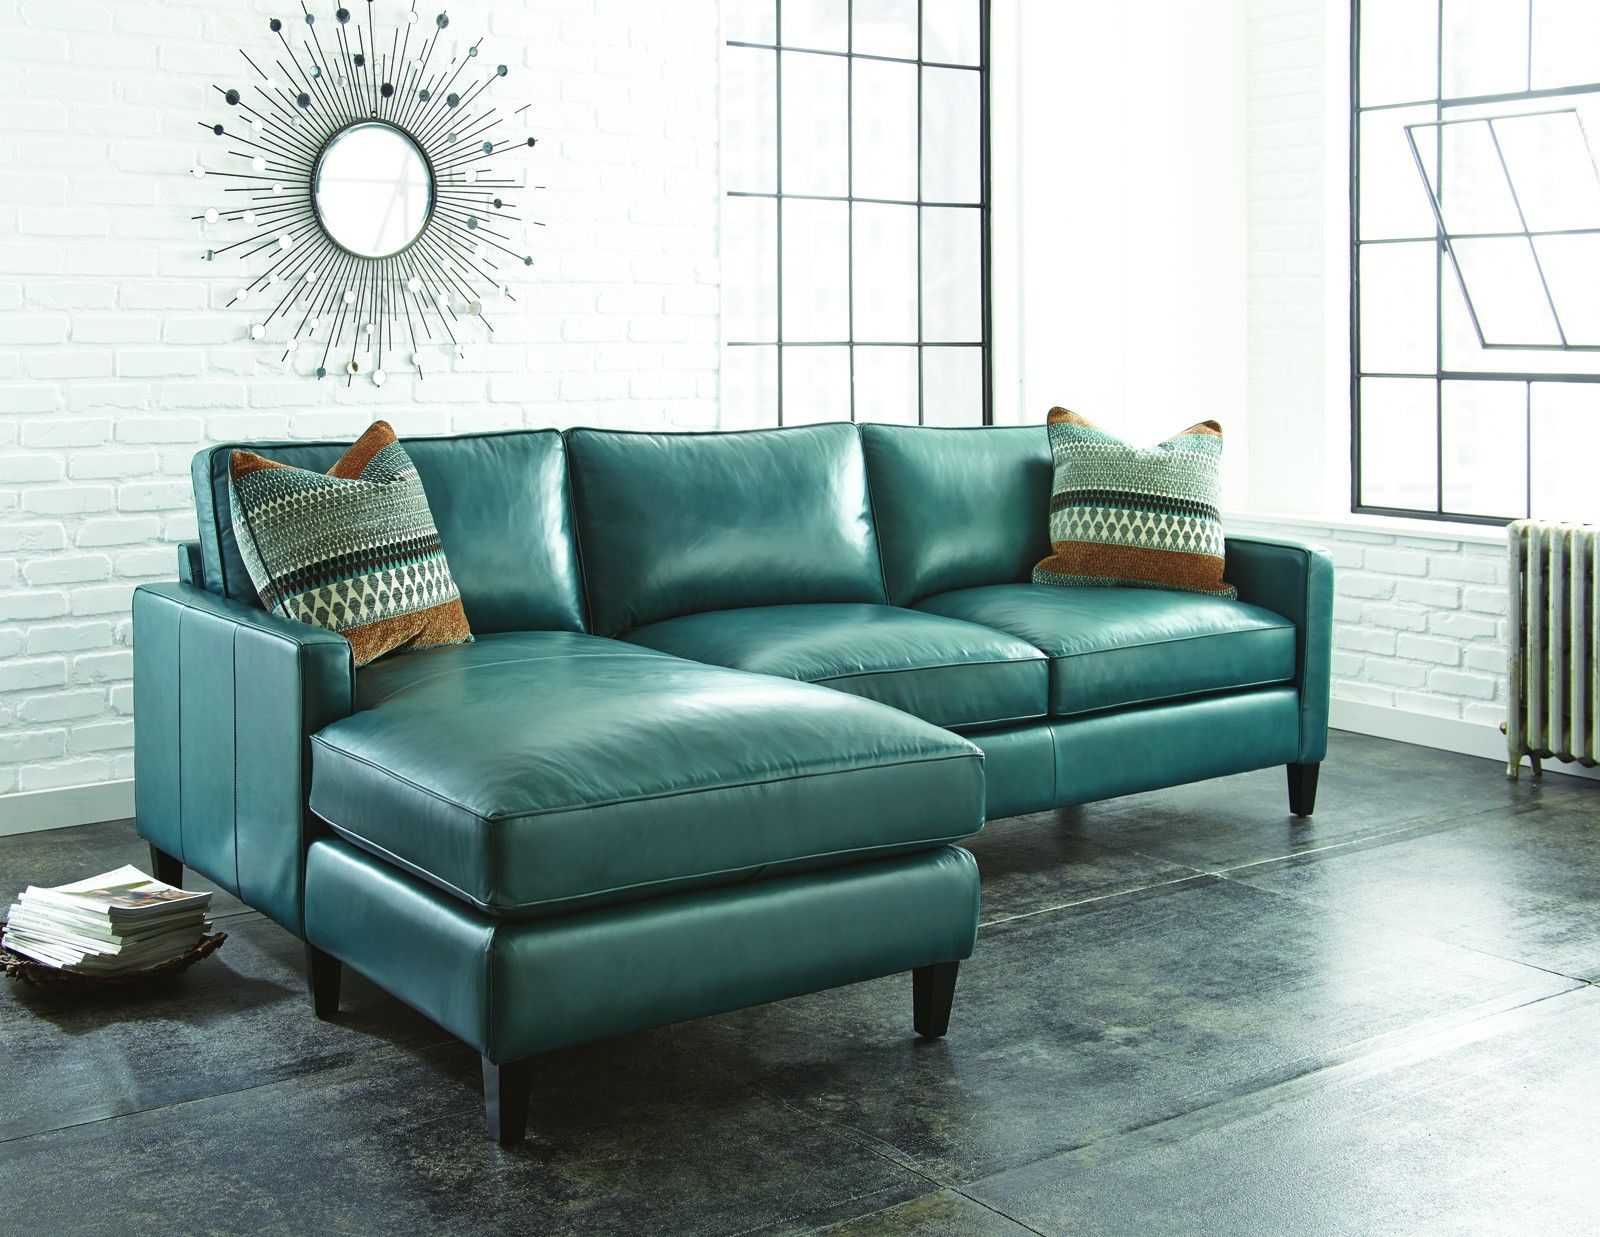 How To Reupholster Leather Furniture In 5 Easy Steps | Living Room Inside Gina Grey Leather Sofa Chairs (Image 14 of 25)